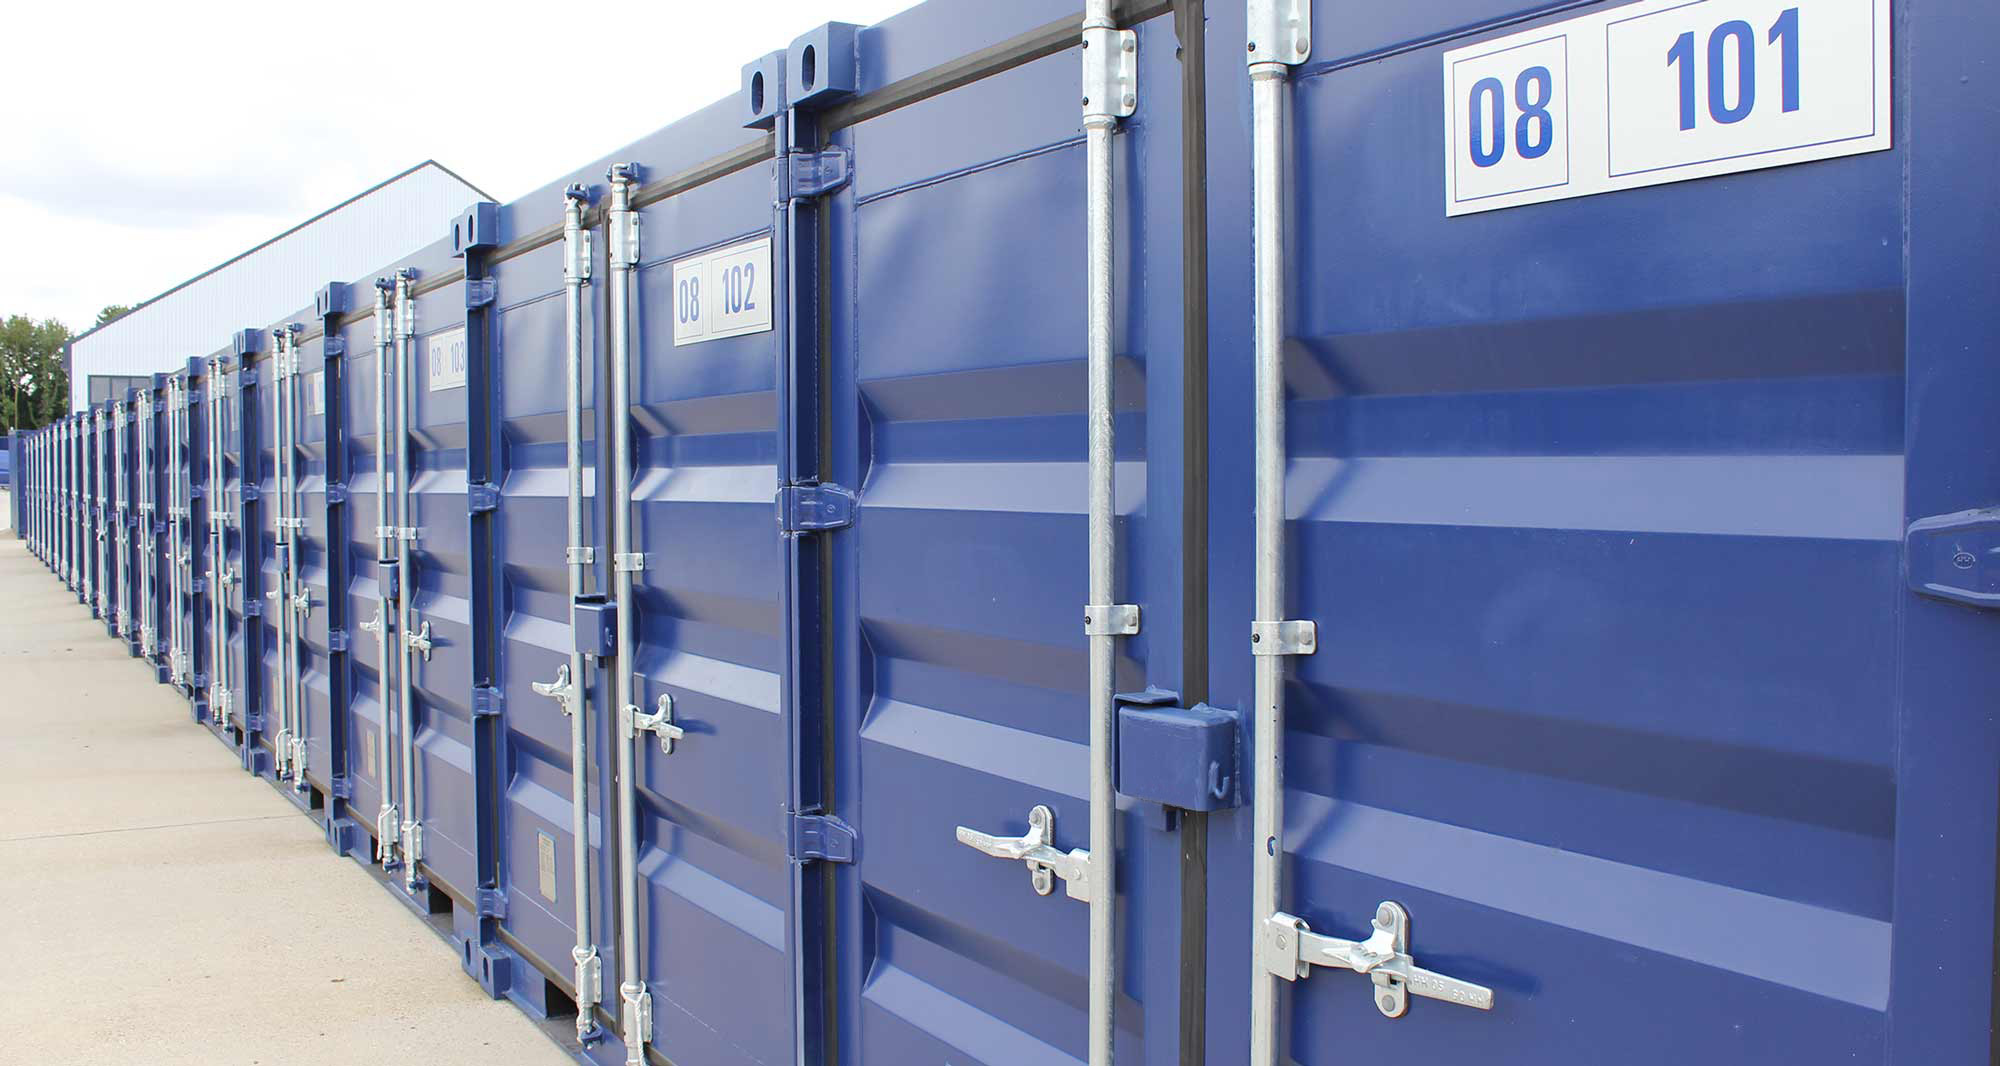 Camstore storage containers in a line